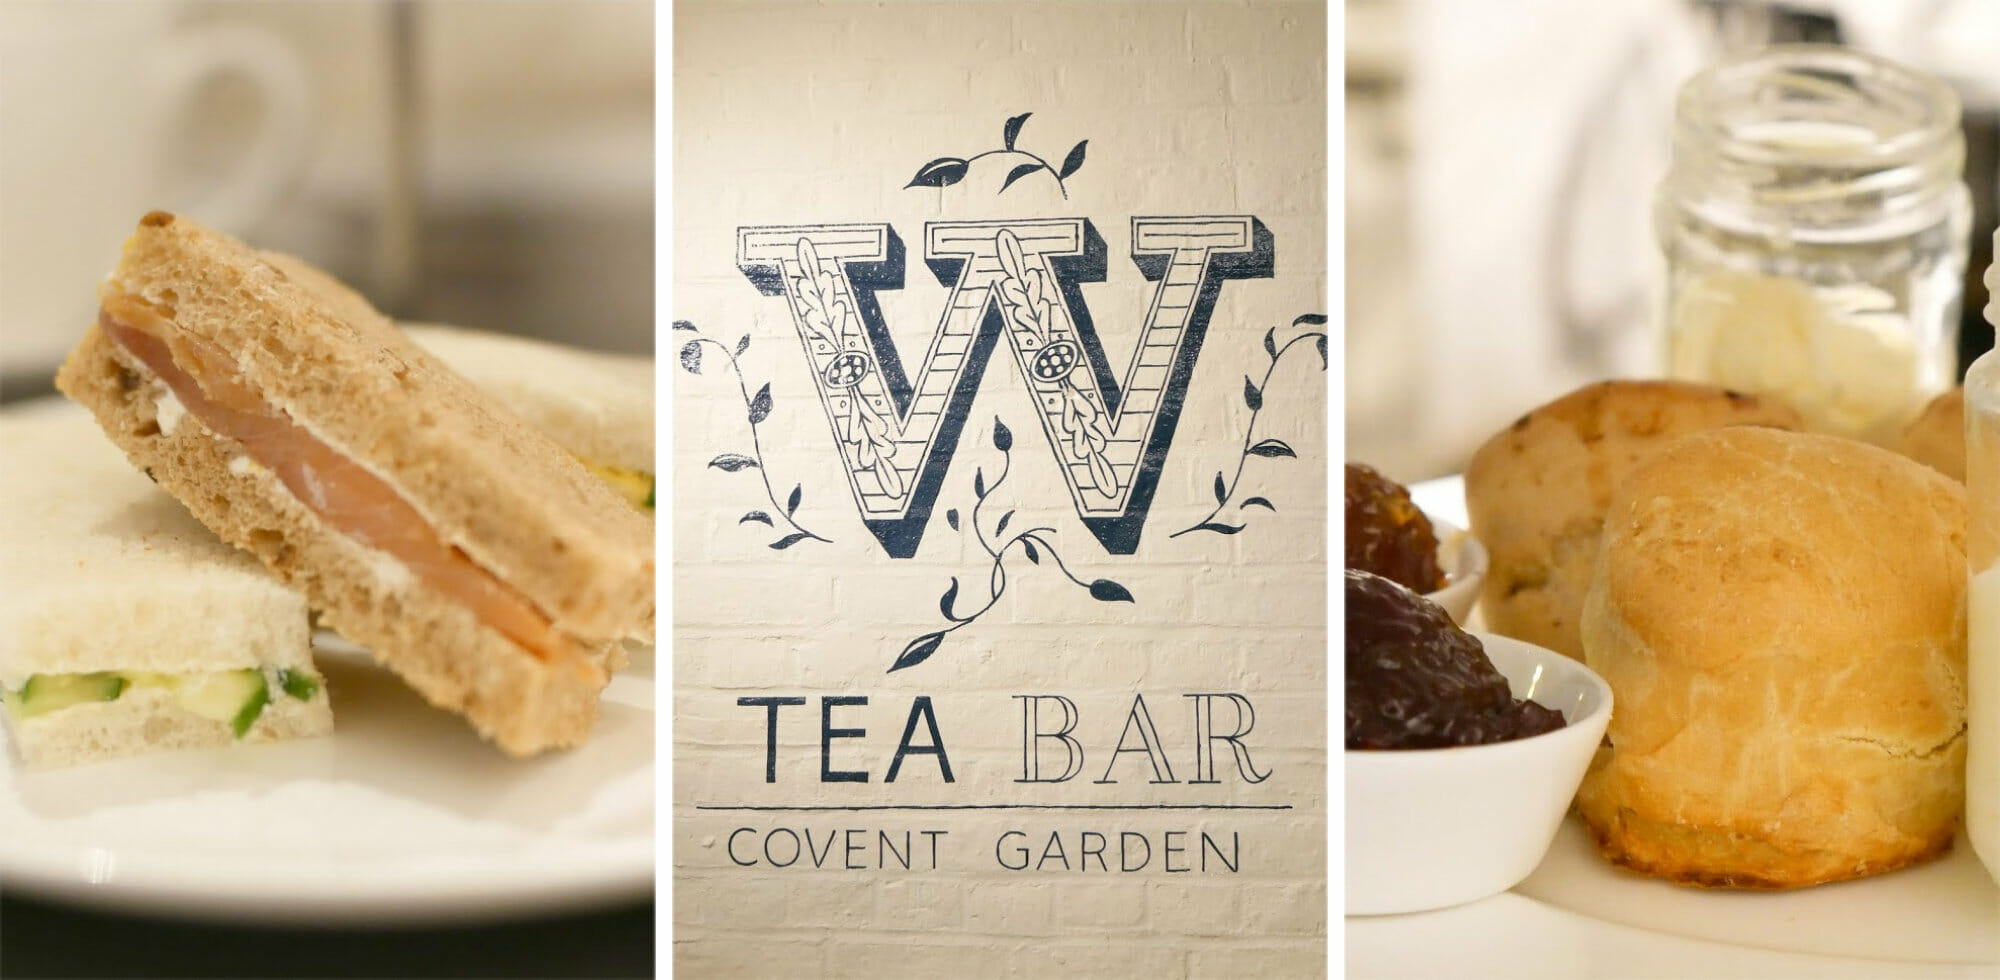 Review Afternoon Tea at Whittards Covent Garden Tea Bar